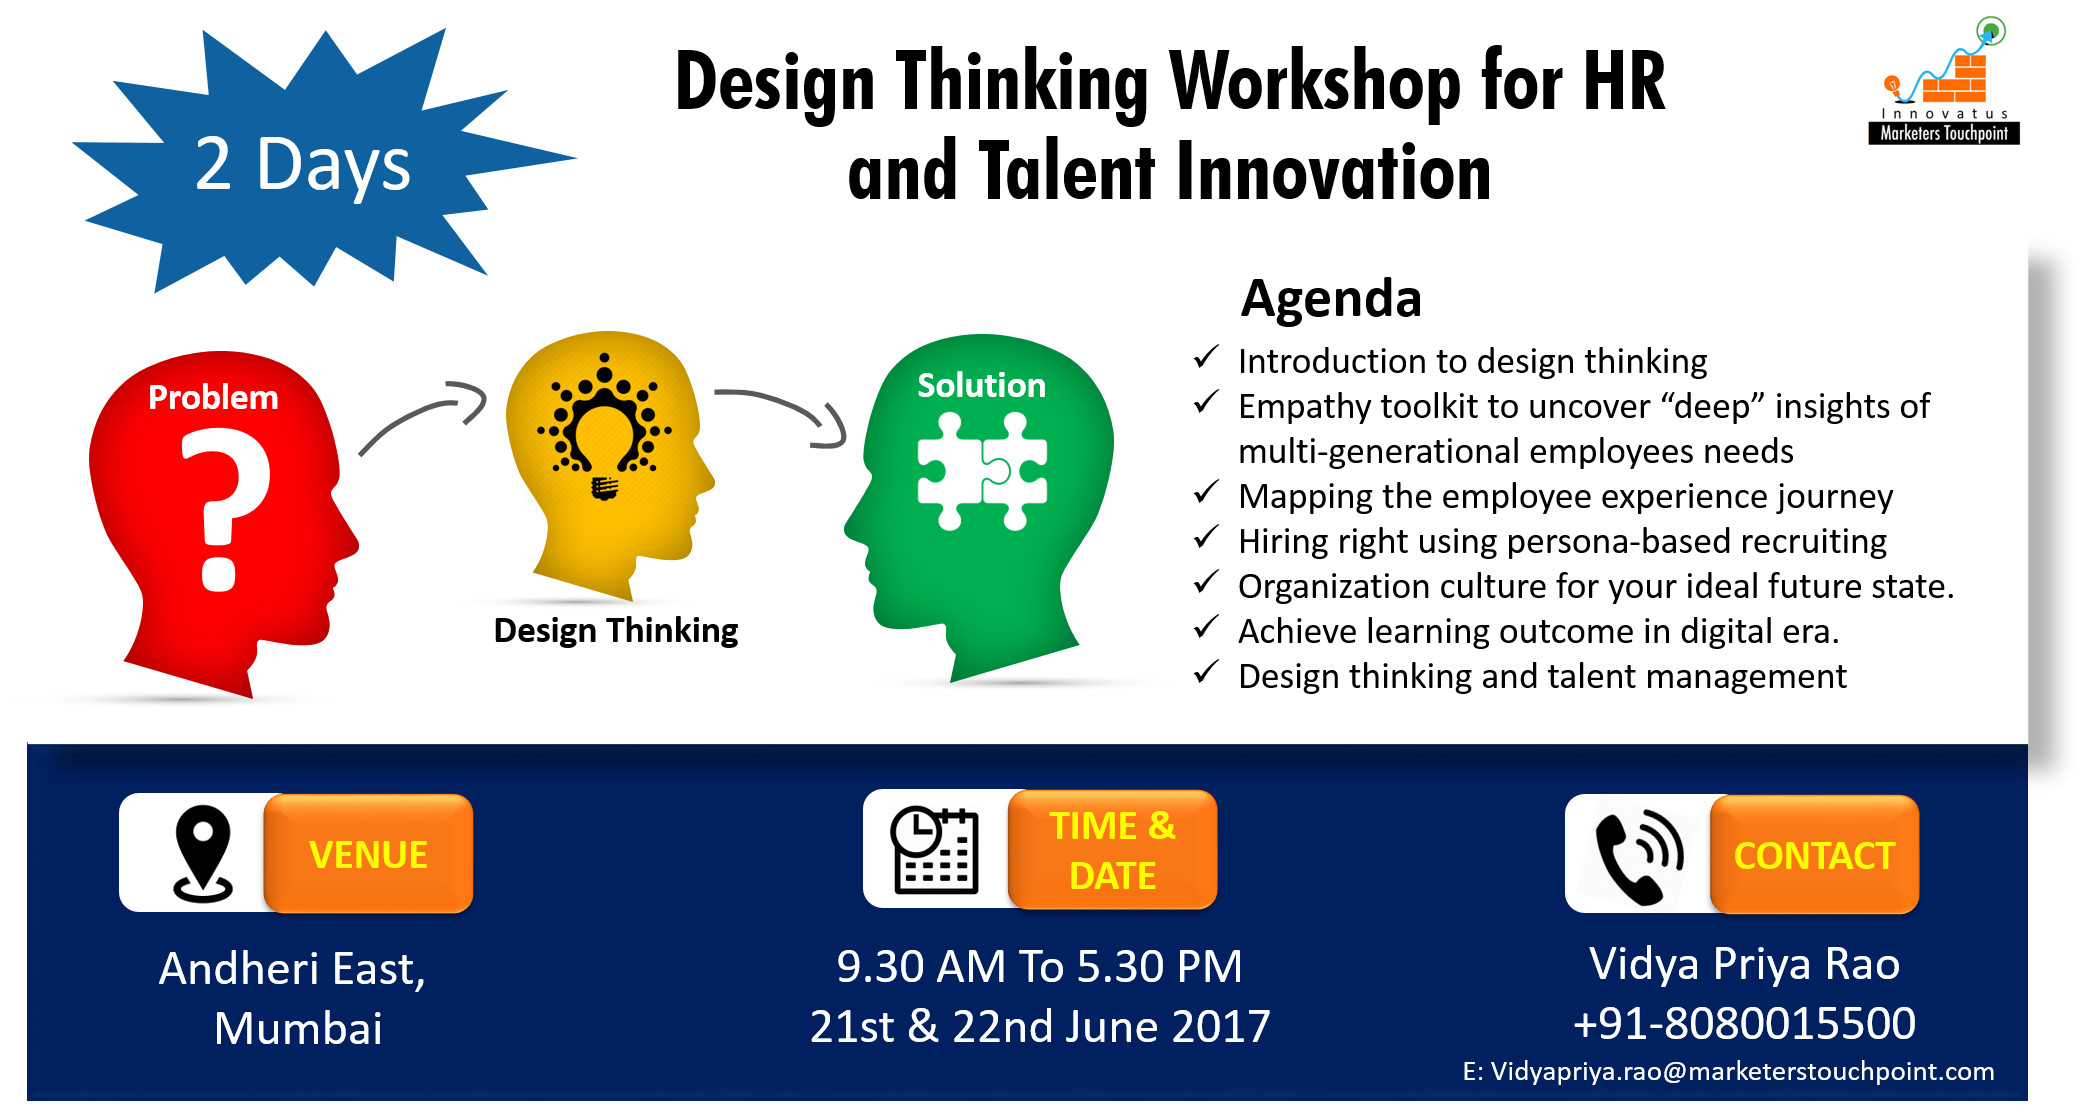 2 Day Design Thinking Workshop for HR and Talent Innovation